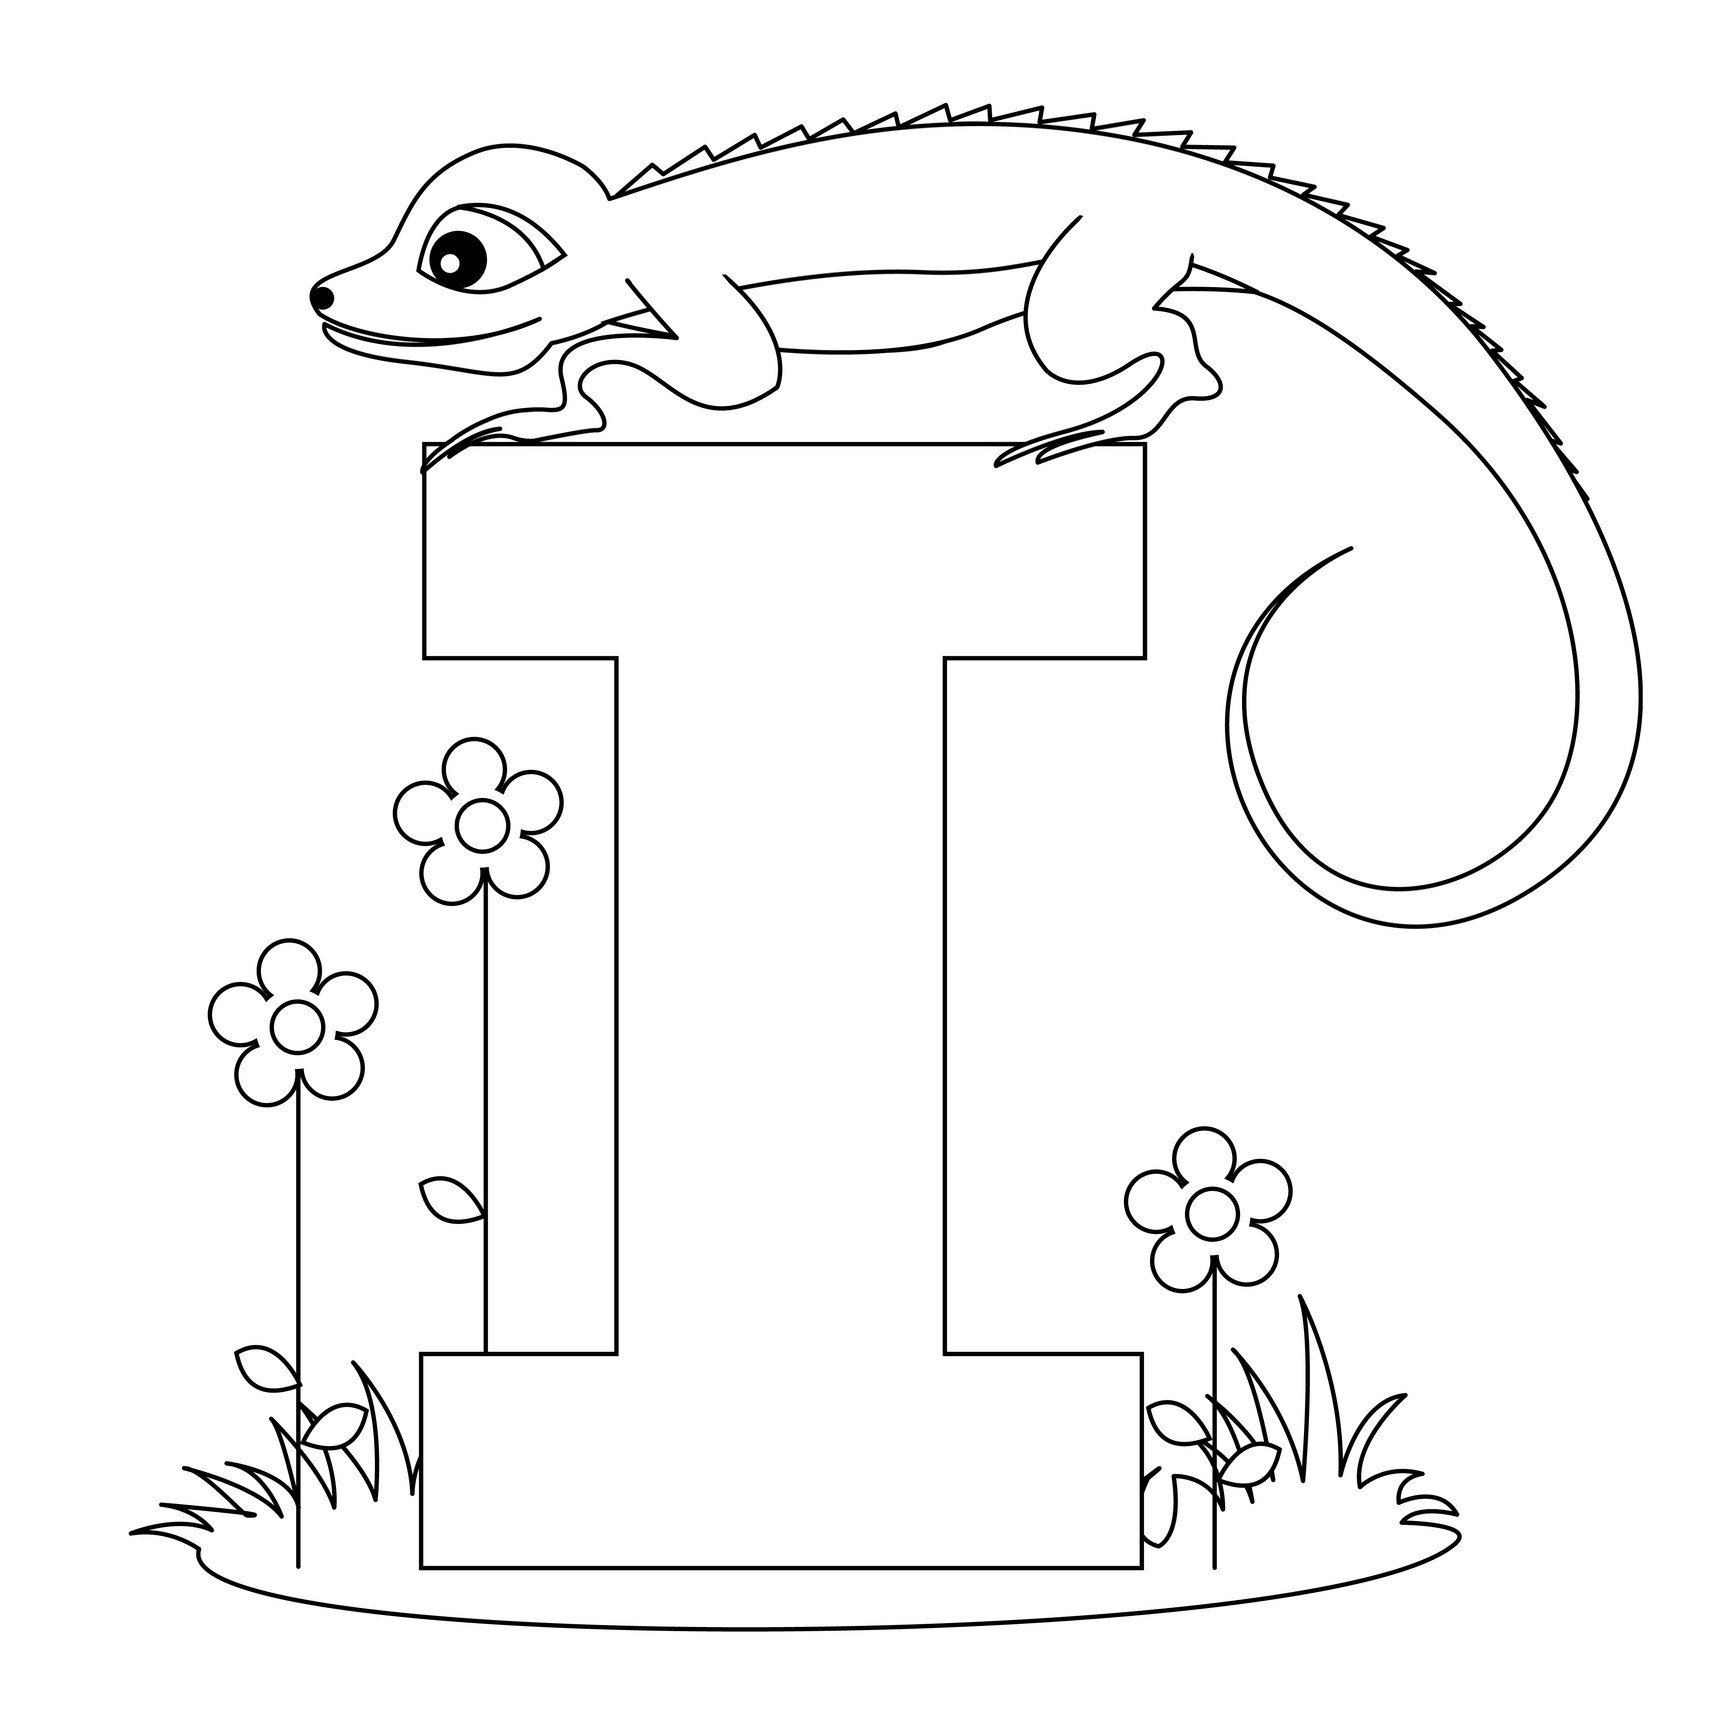 alphabet letters coloring pages n - photo#18